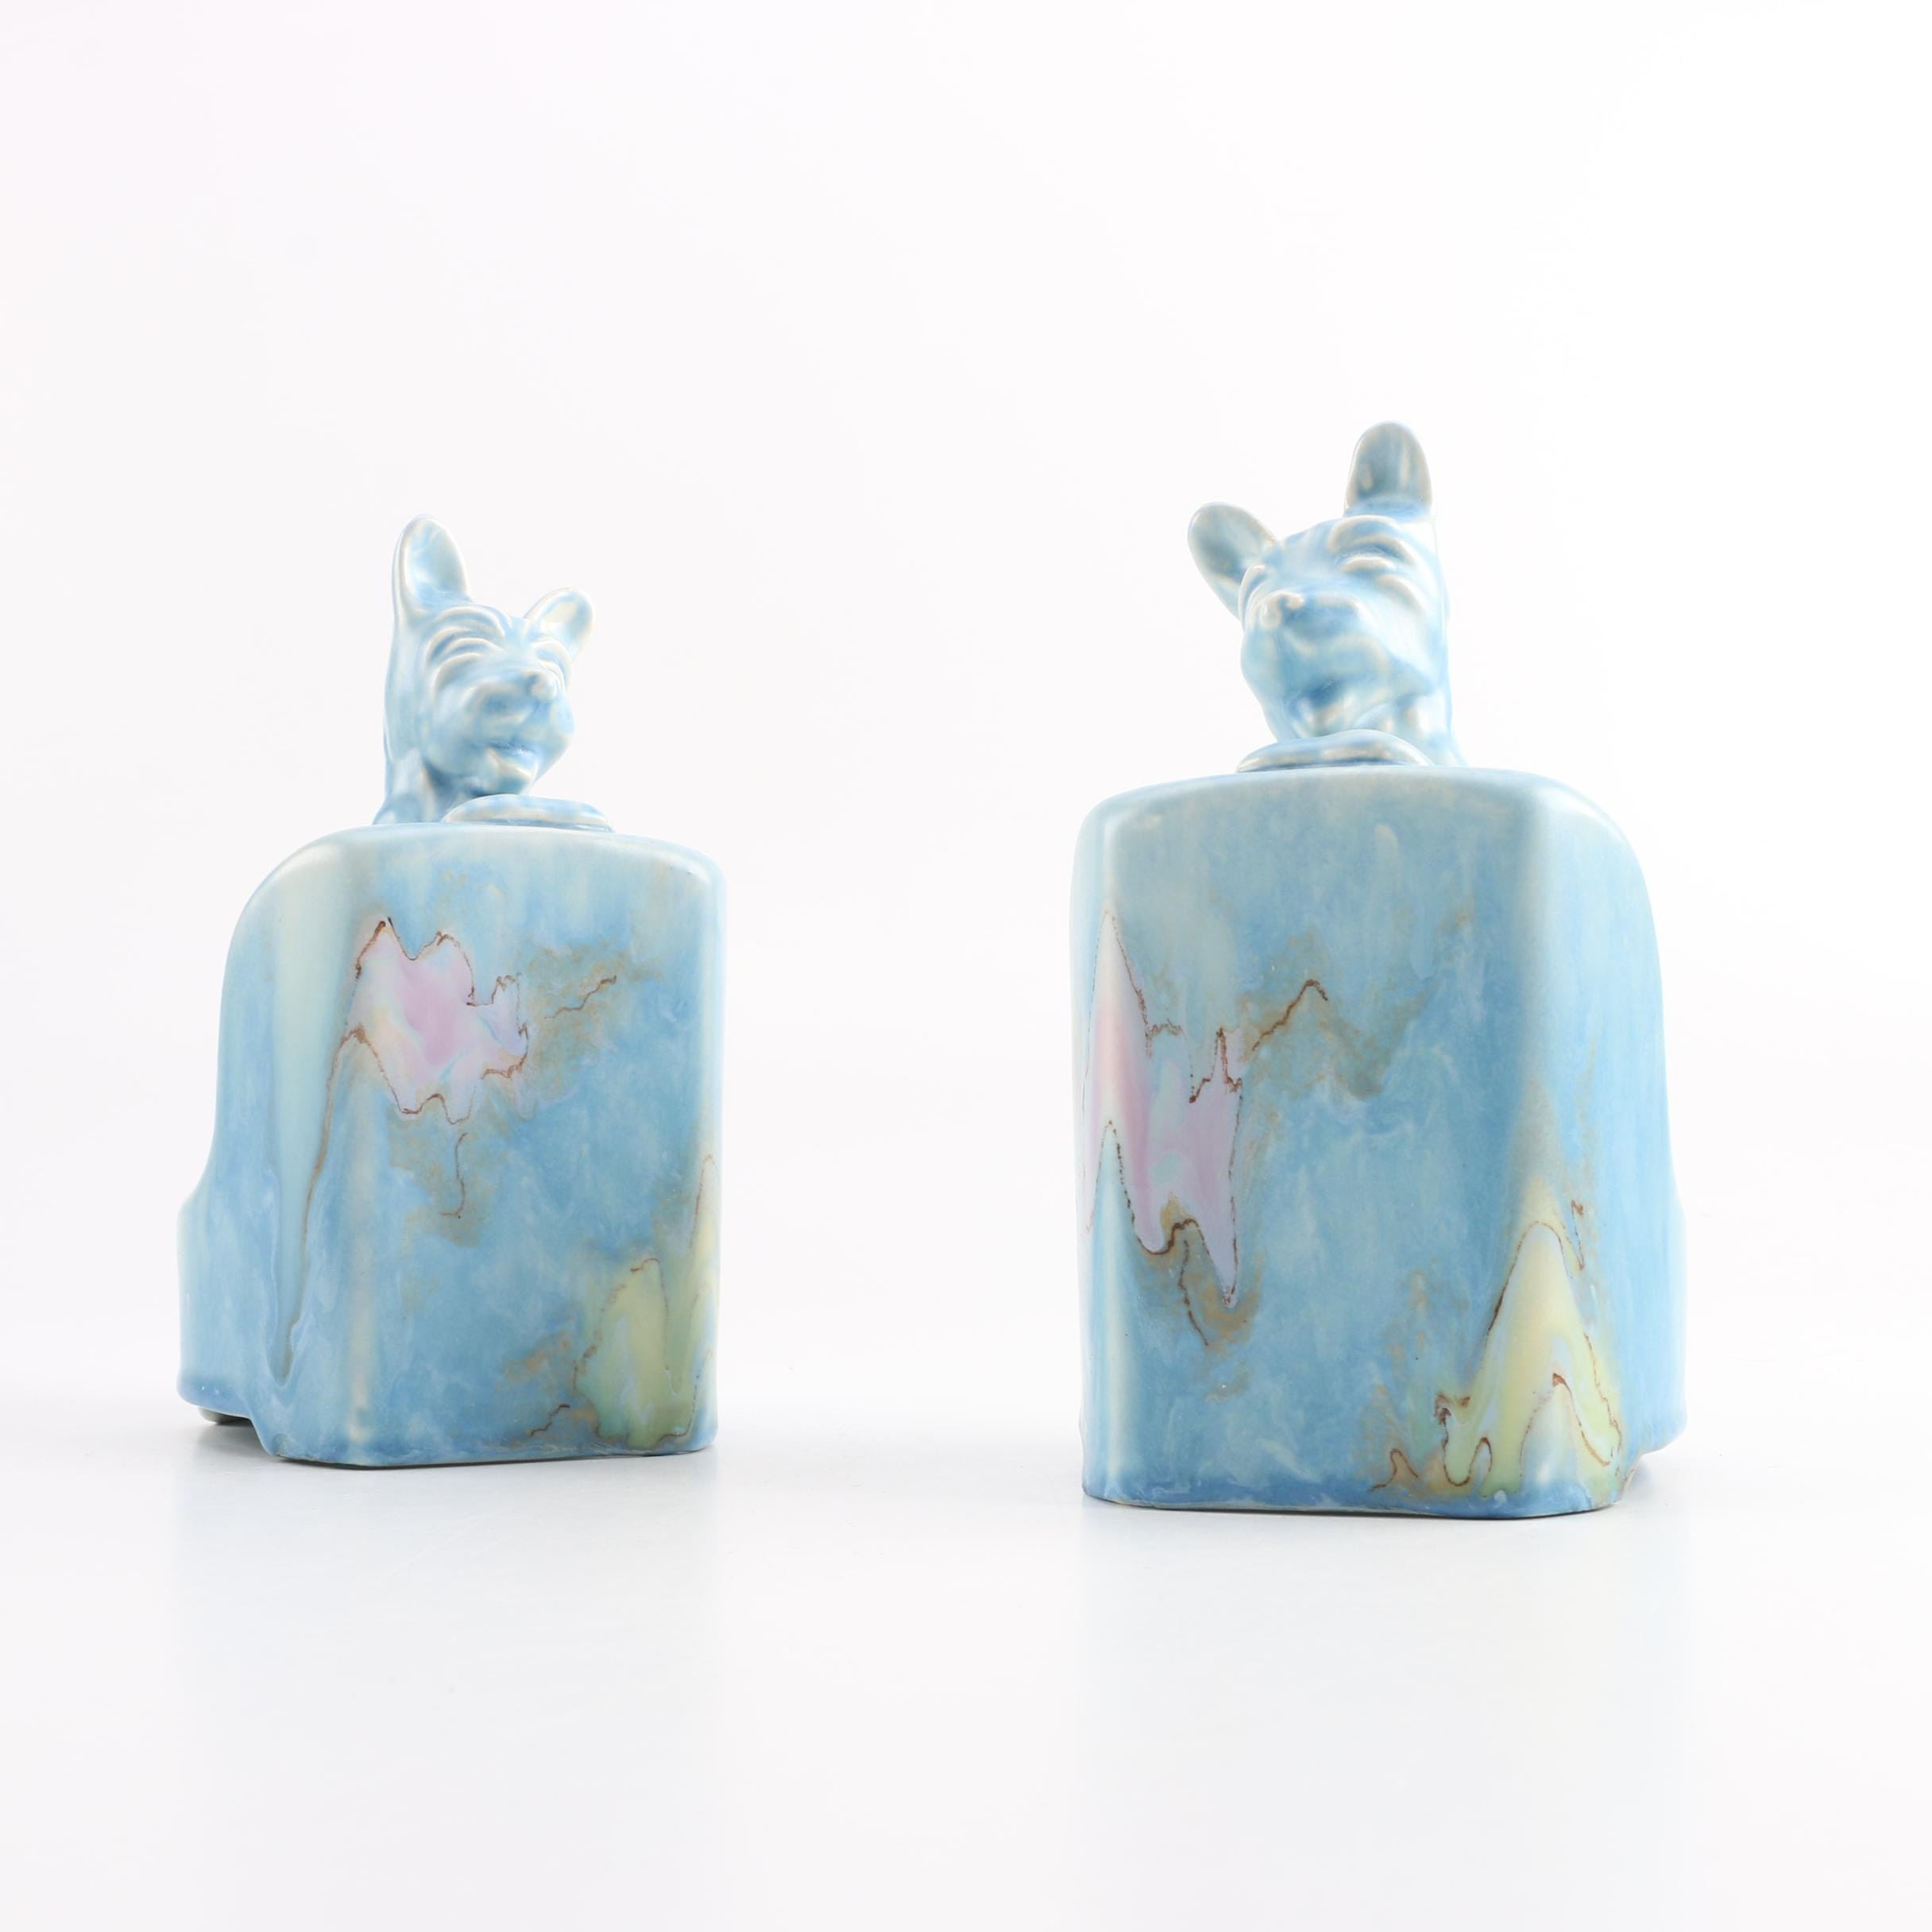 Vintage Beswick Pottery Blue Scottish Terrier Bookends